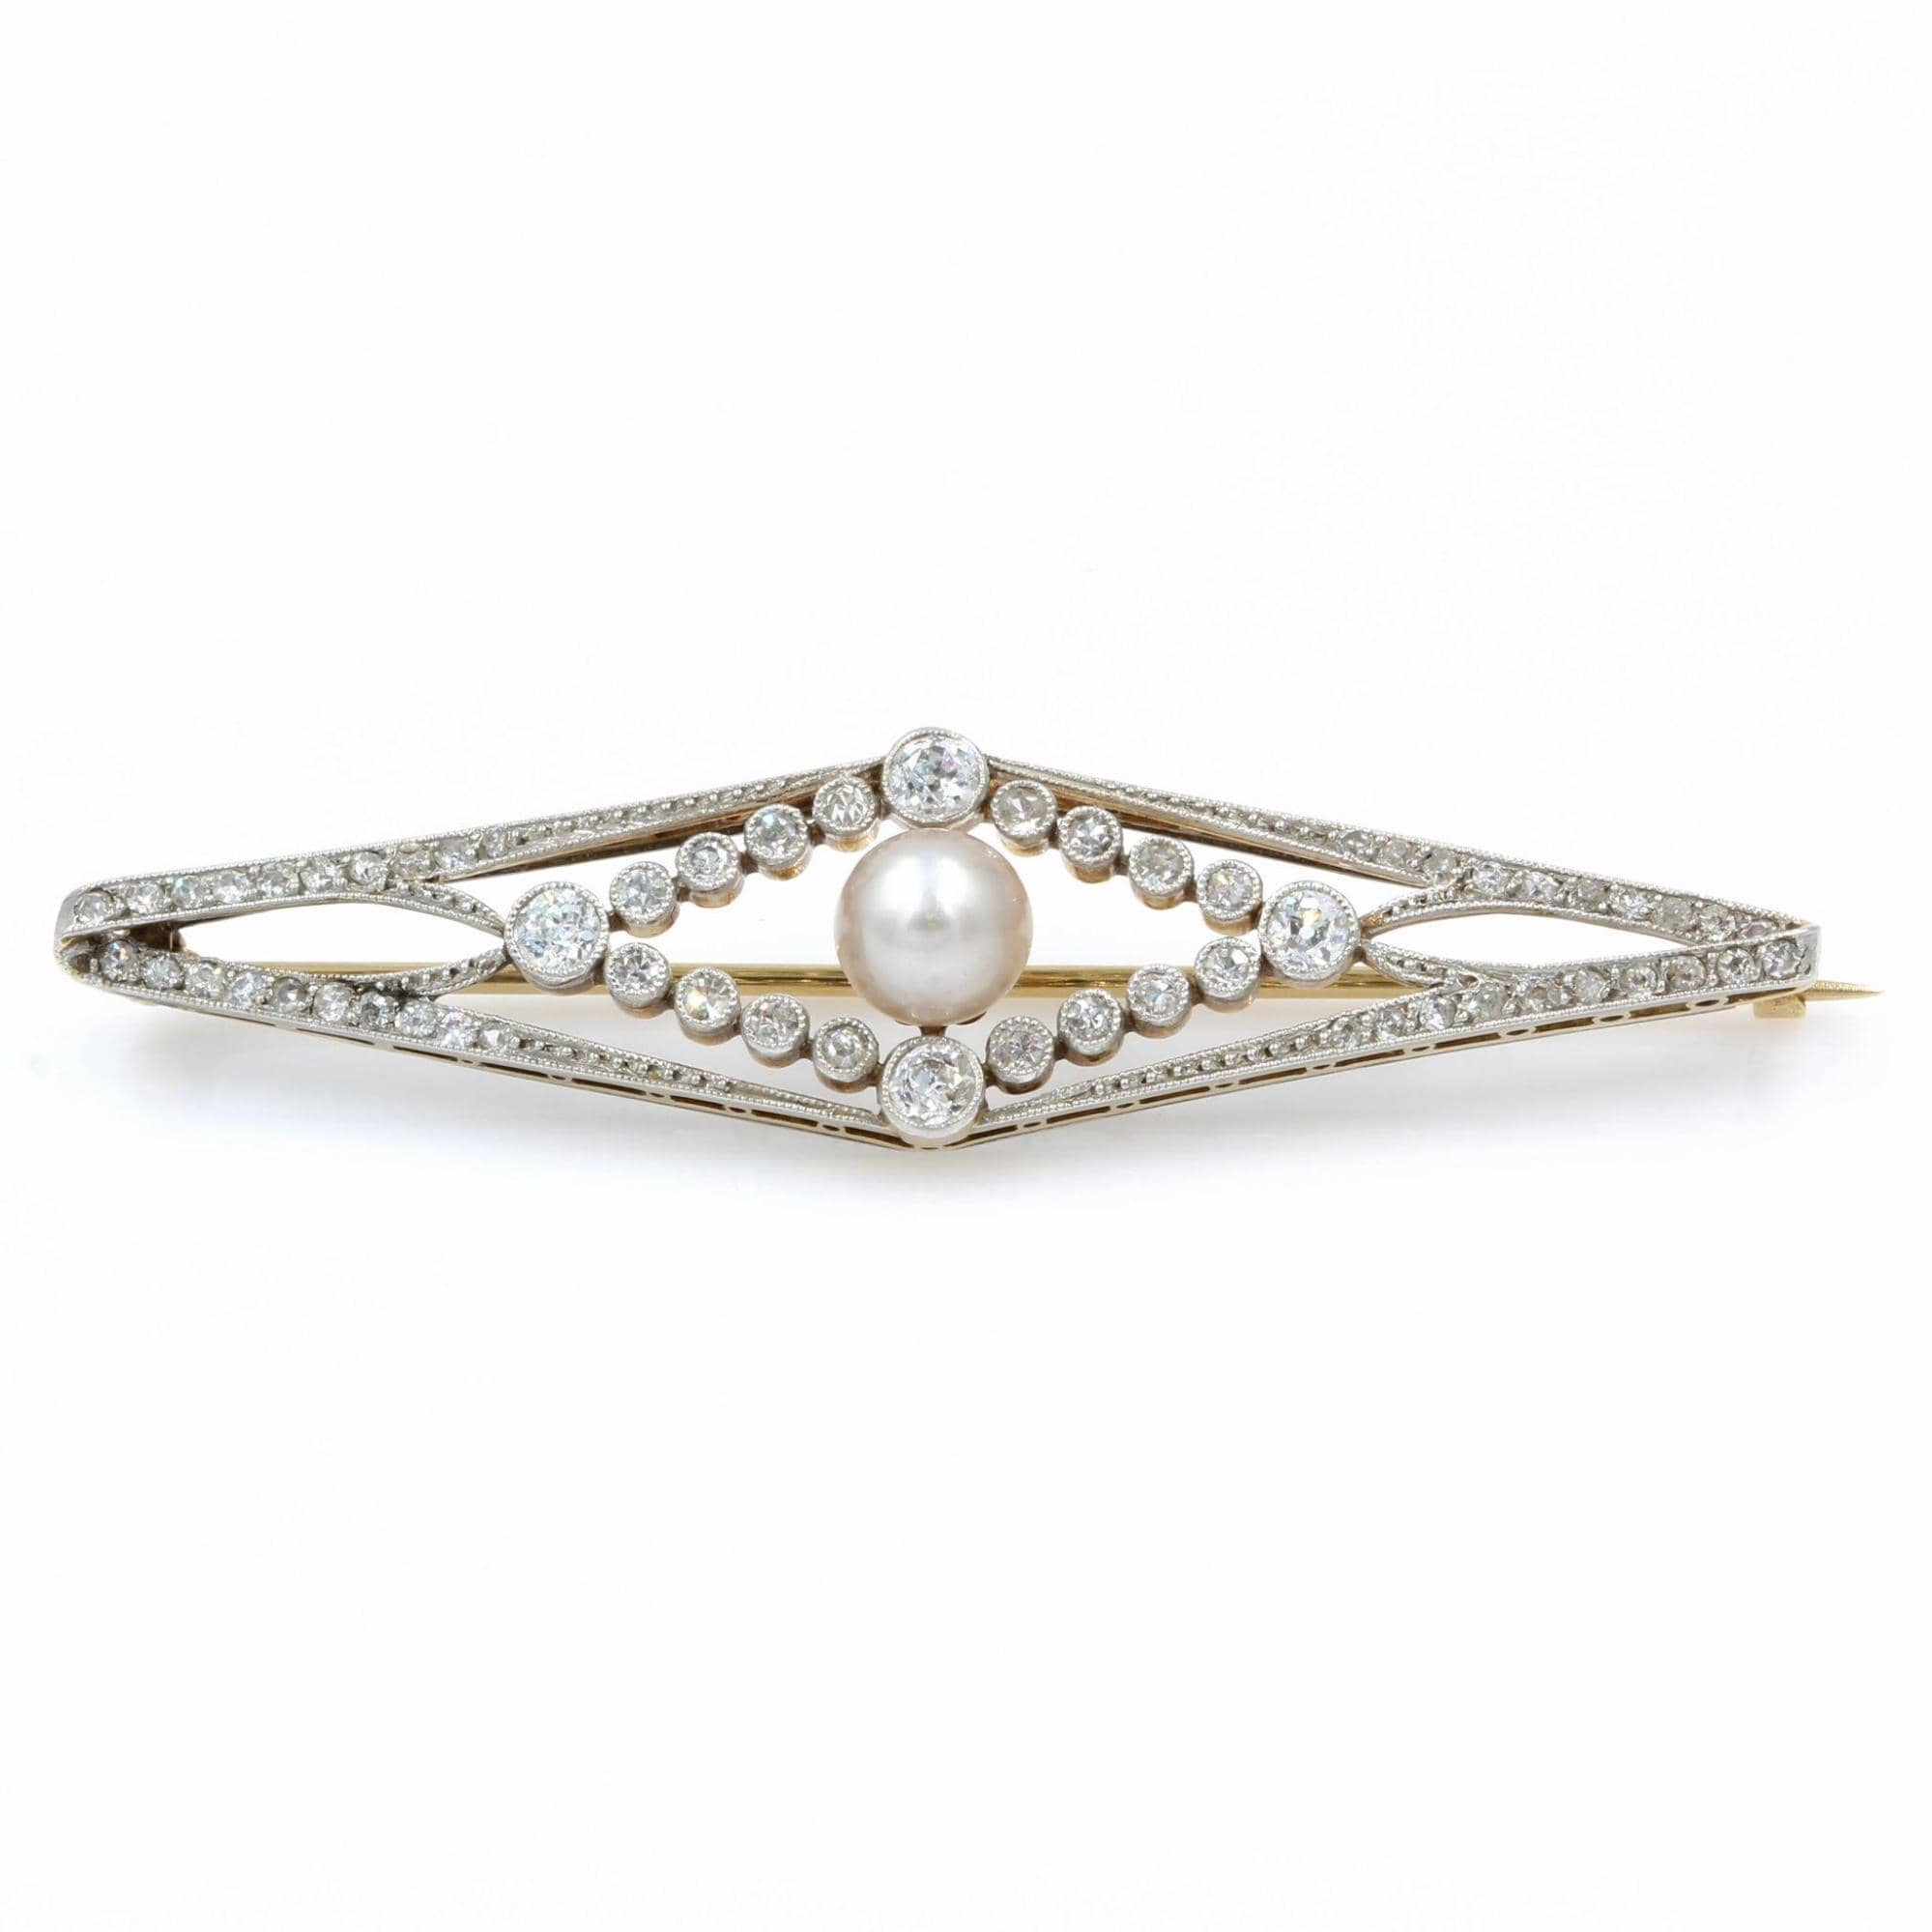 Jewelry with a pearl